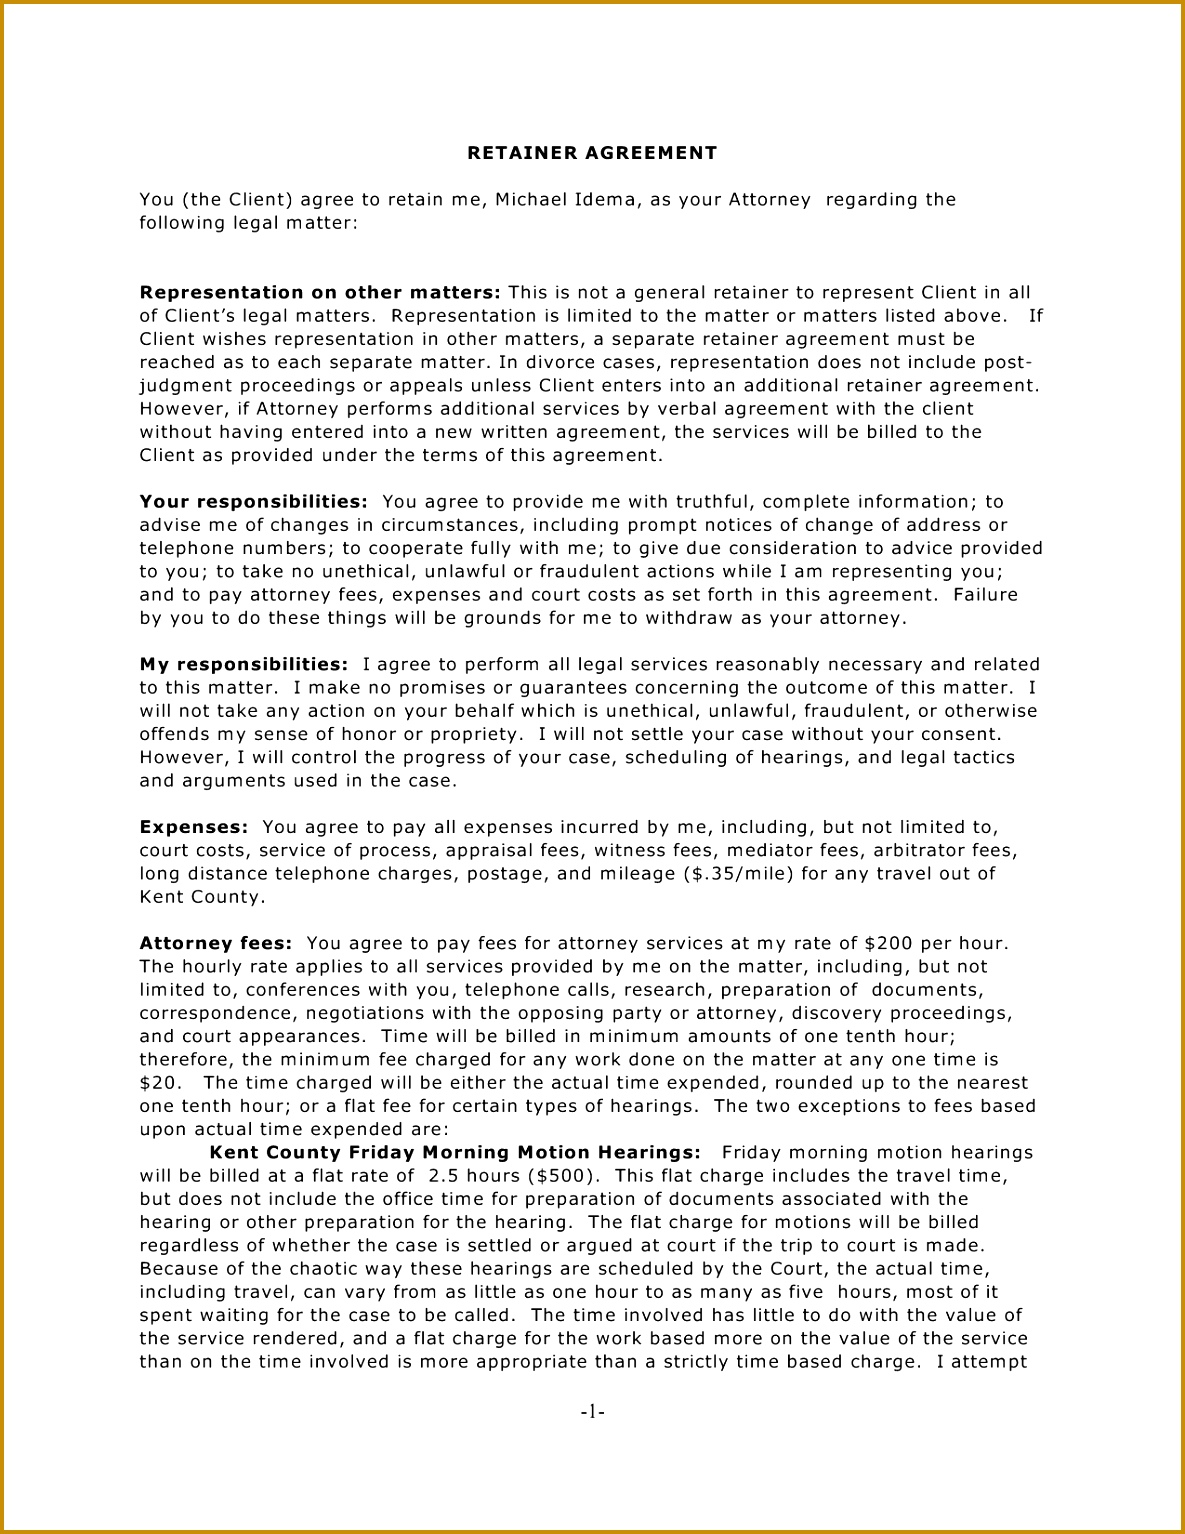 Retainer Proposal Template 56887 10 Best Of Retainer Agreement